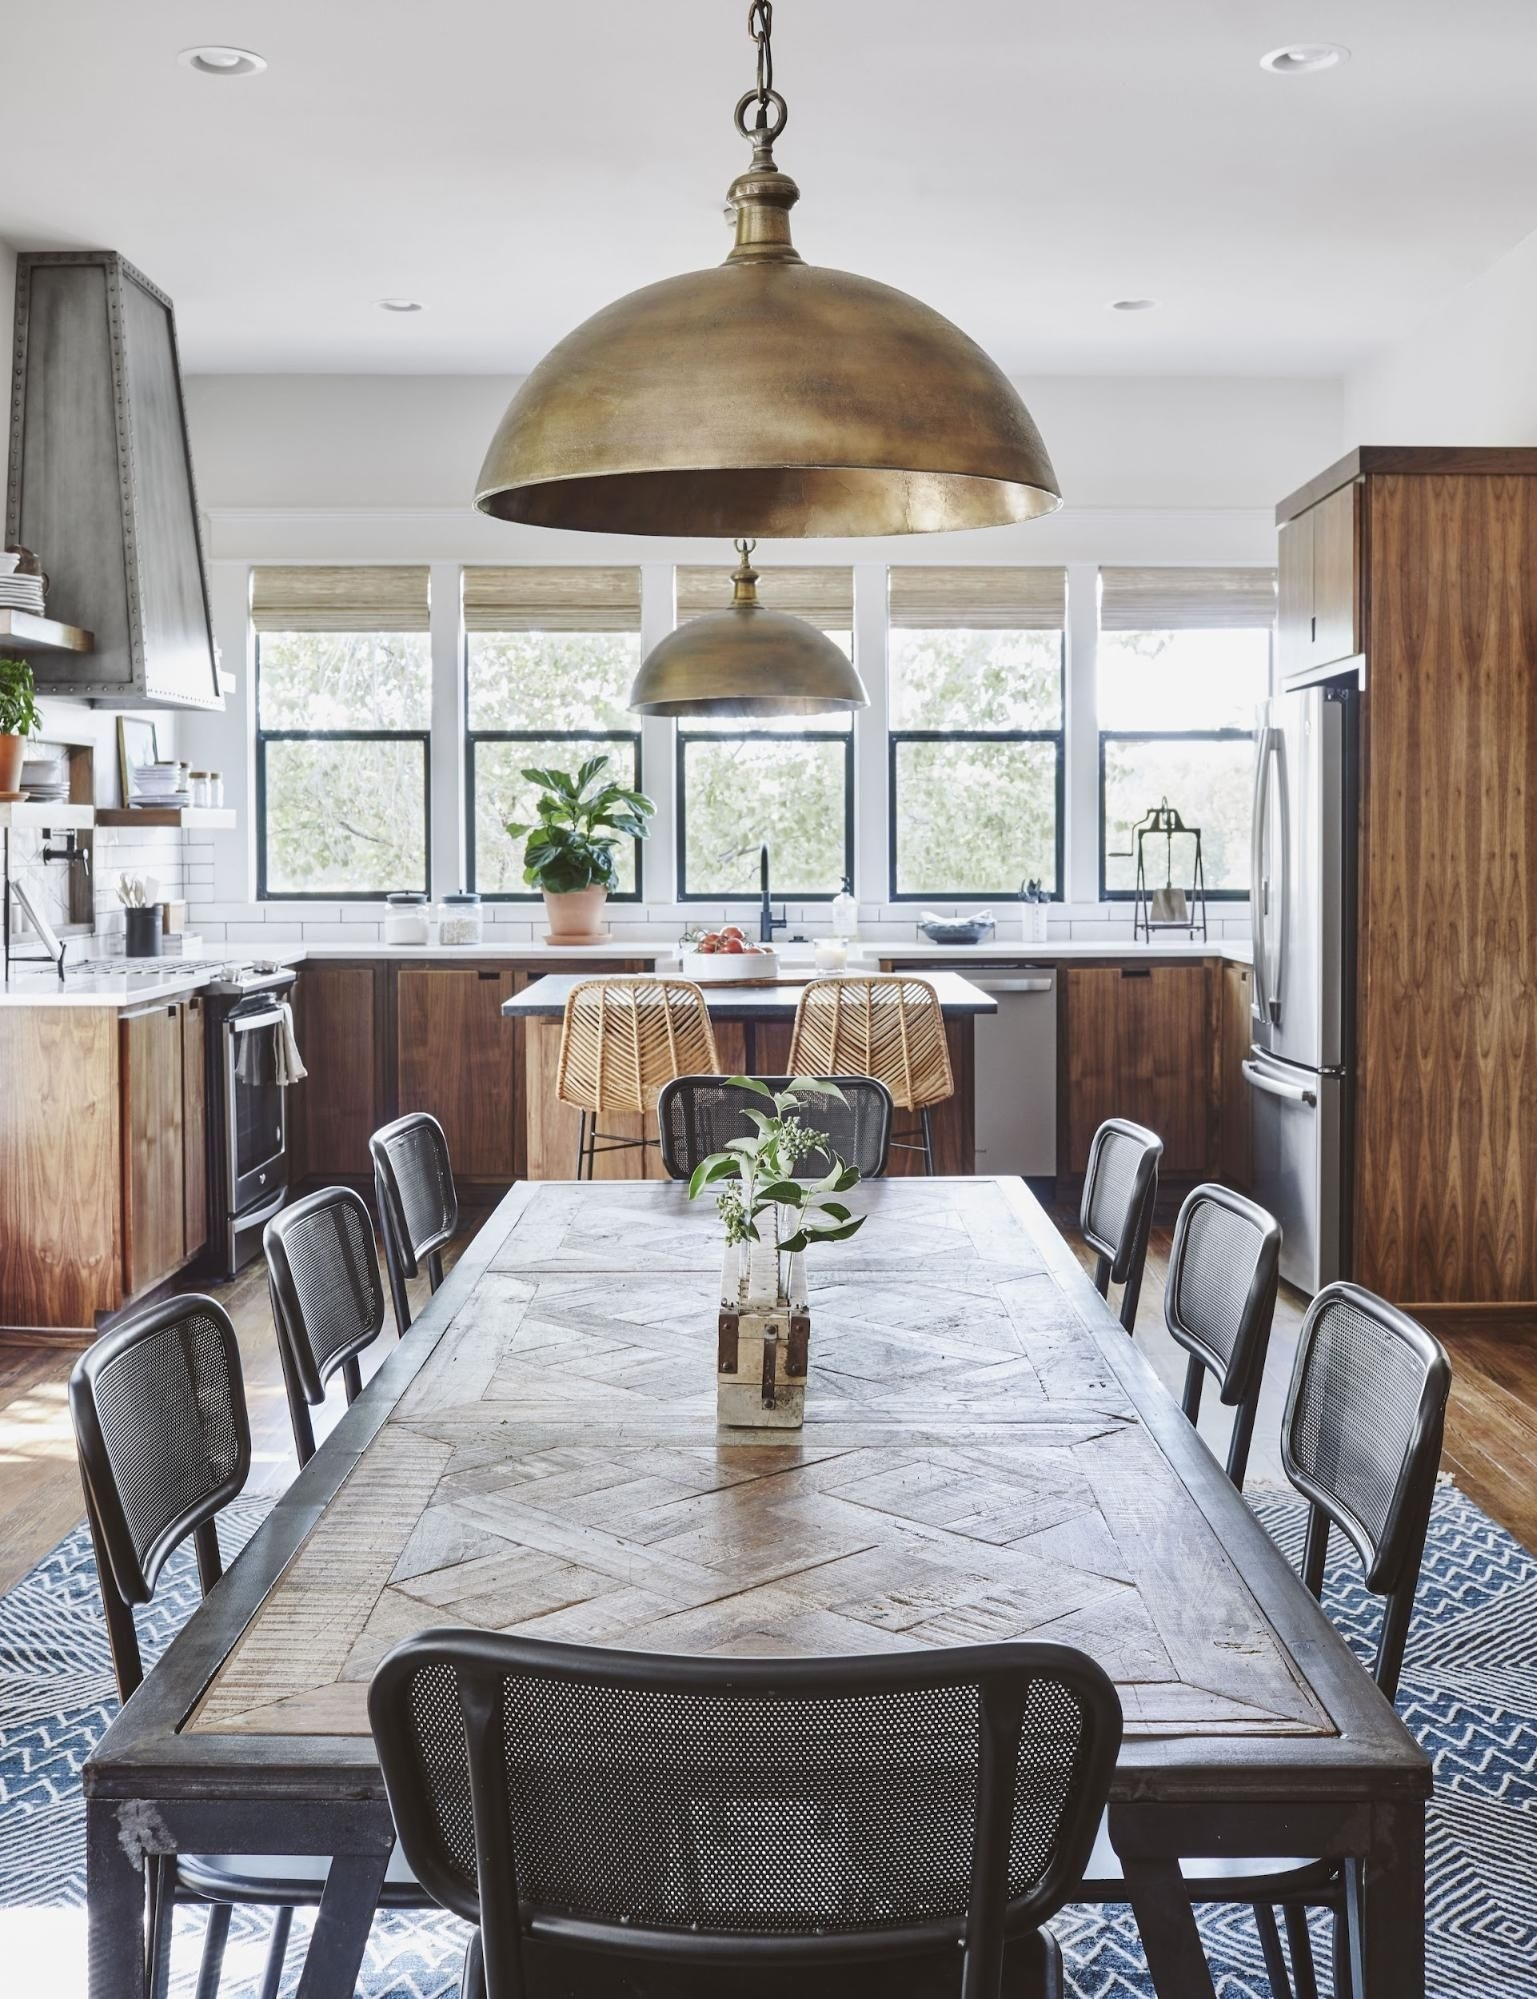 Episode 10: Season 5 | Fixer Upper | Pinterest | House, Fixer Upper With Regard To Most Recently Released Magnolia Home Array Dining Tables By Joanna Gaines (Image 7 of 20)